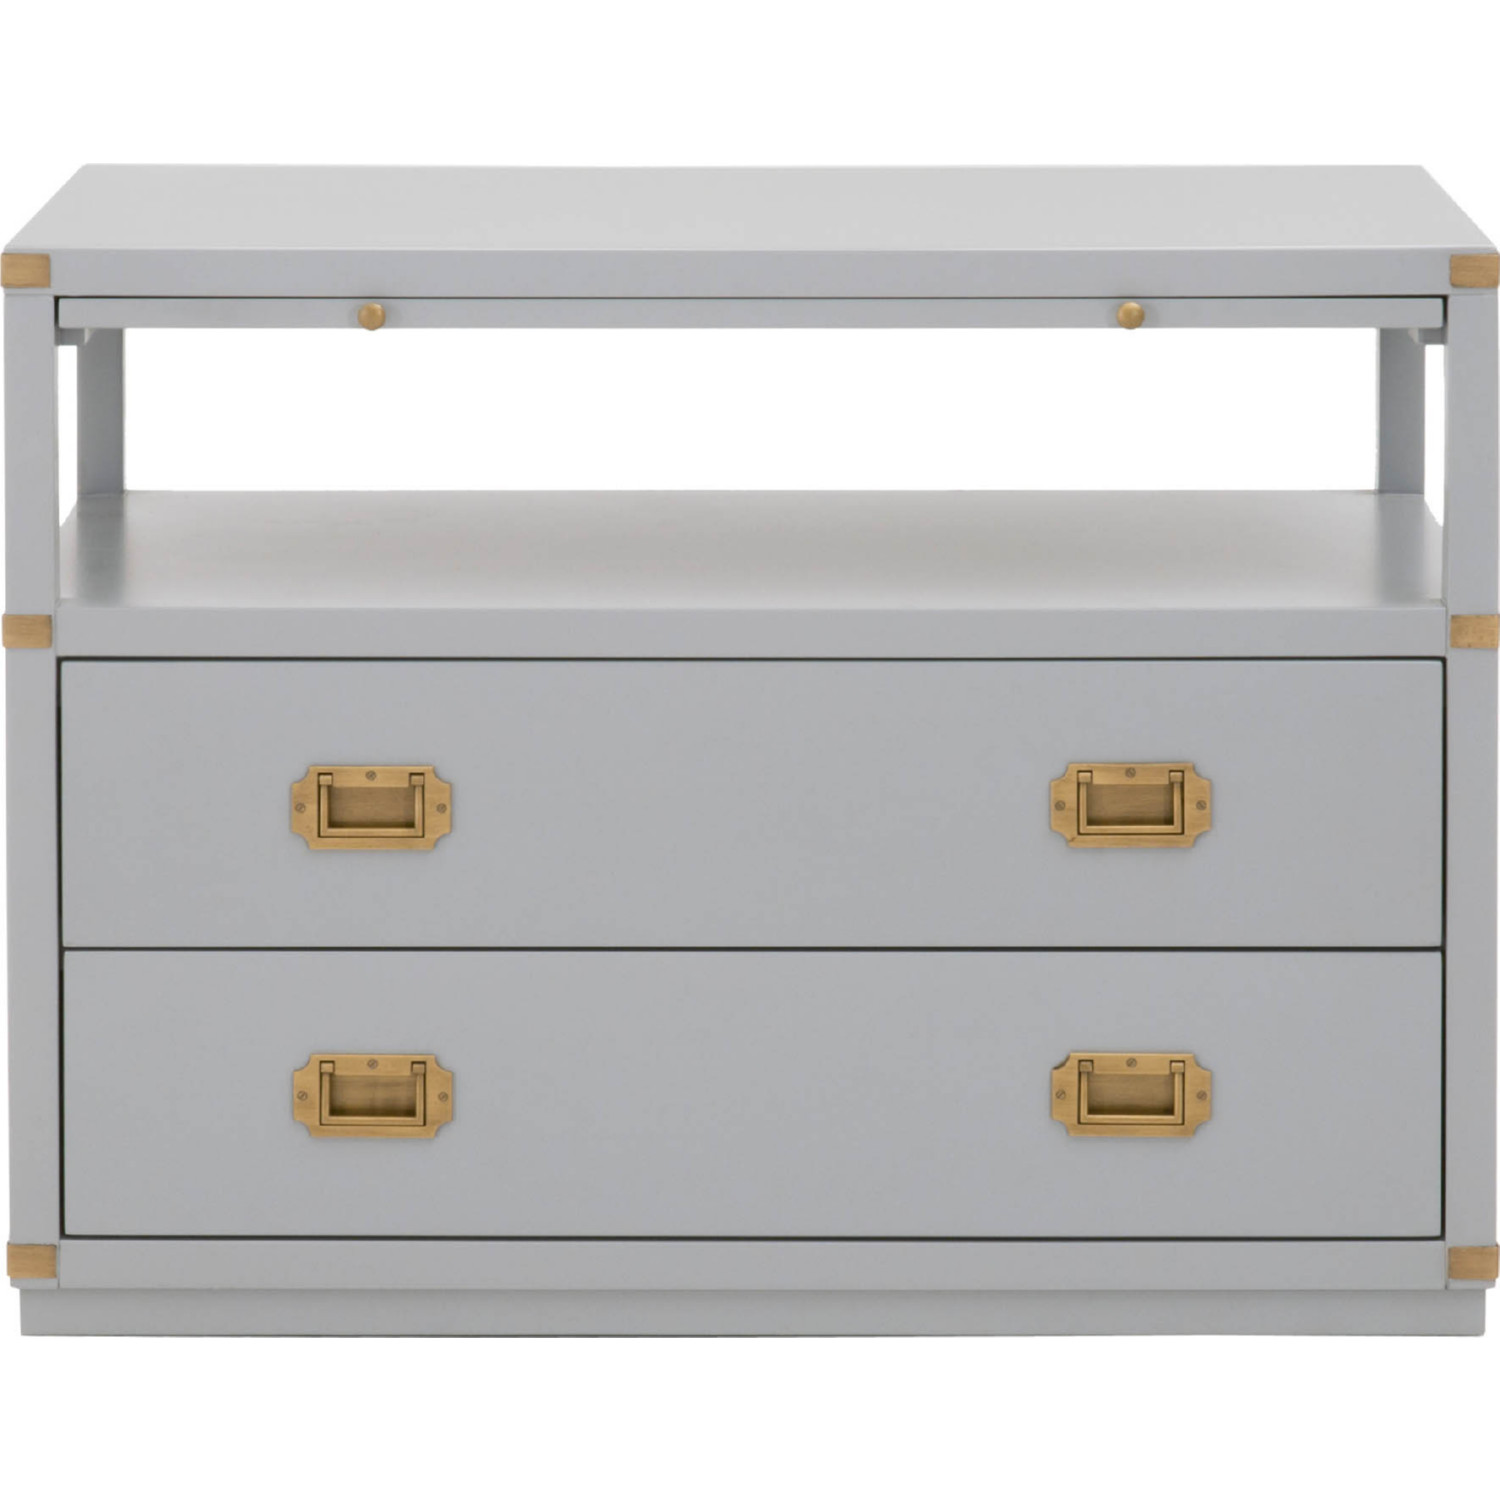 Efl 6131 Dgr Bgld Bradley 2 Drawer Nightstand In Dove Gray Brushed Gold